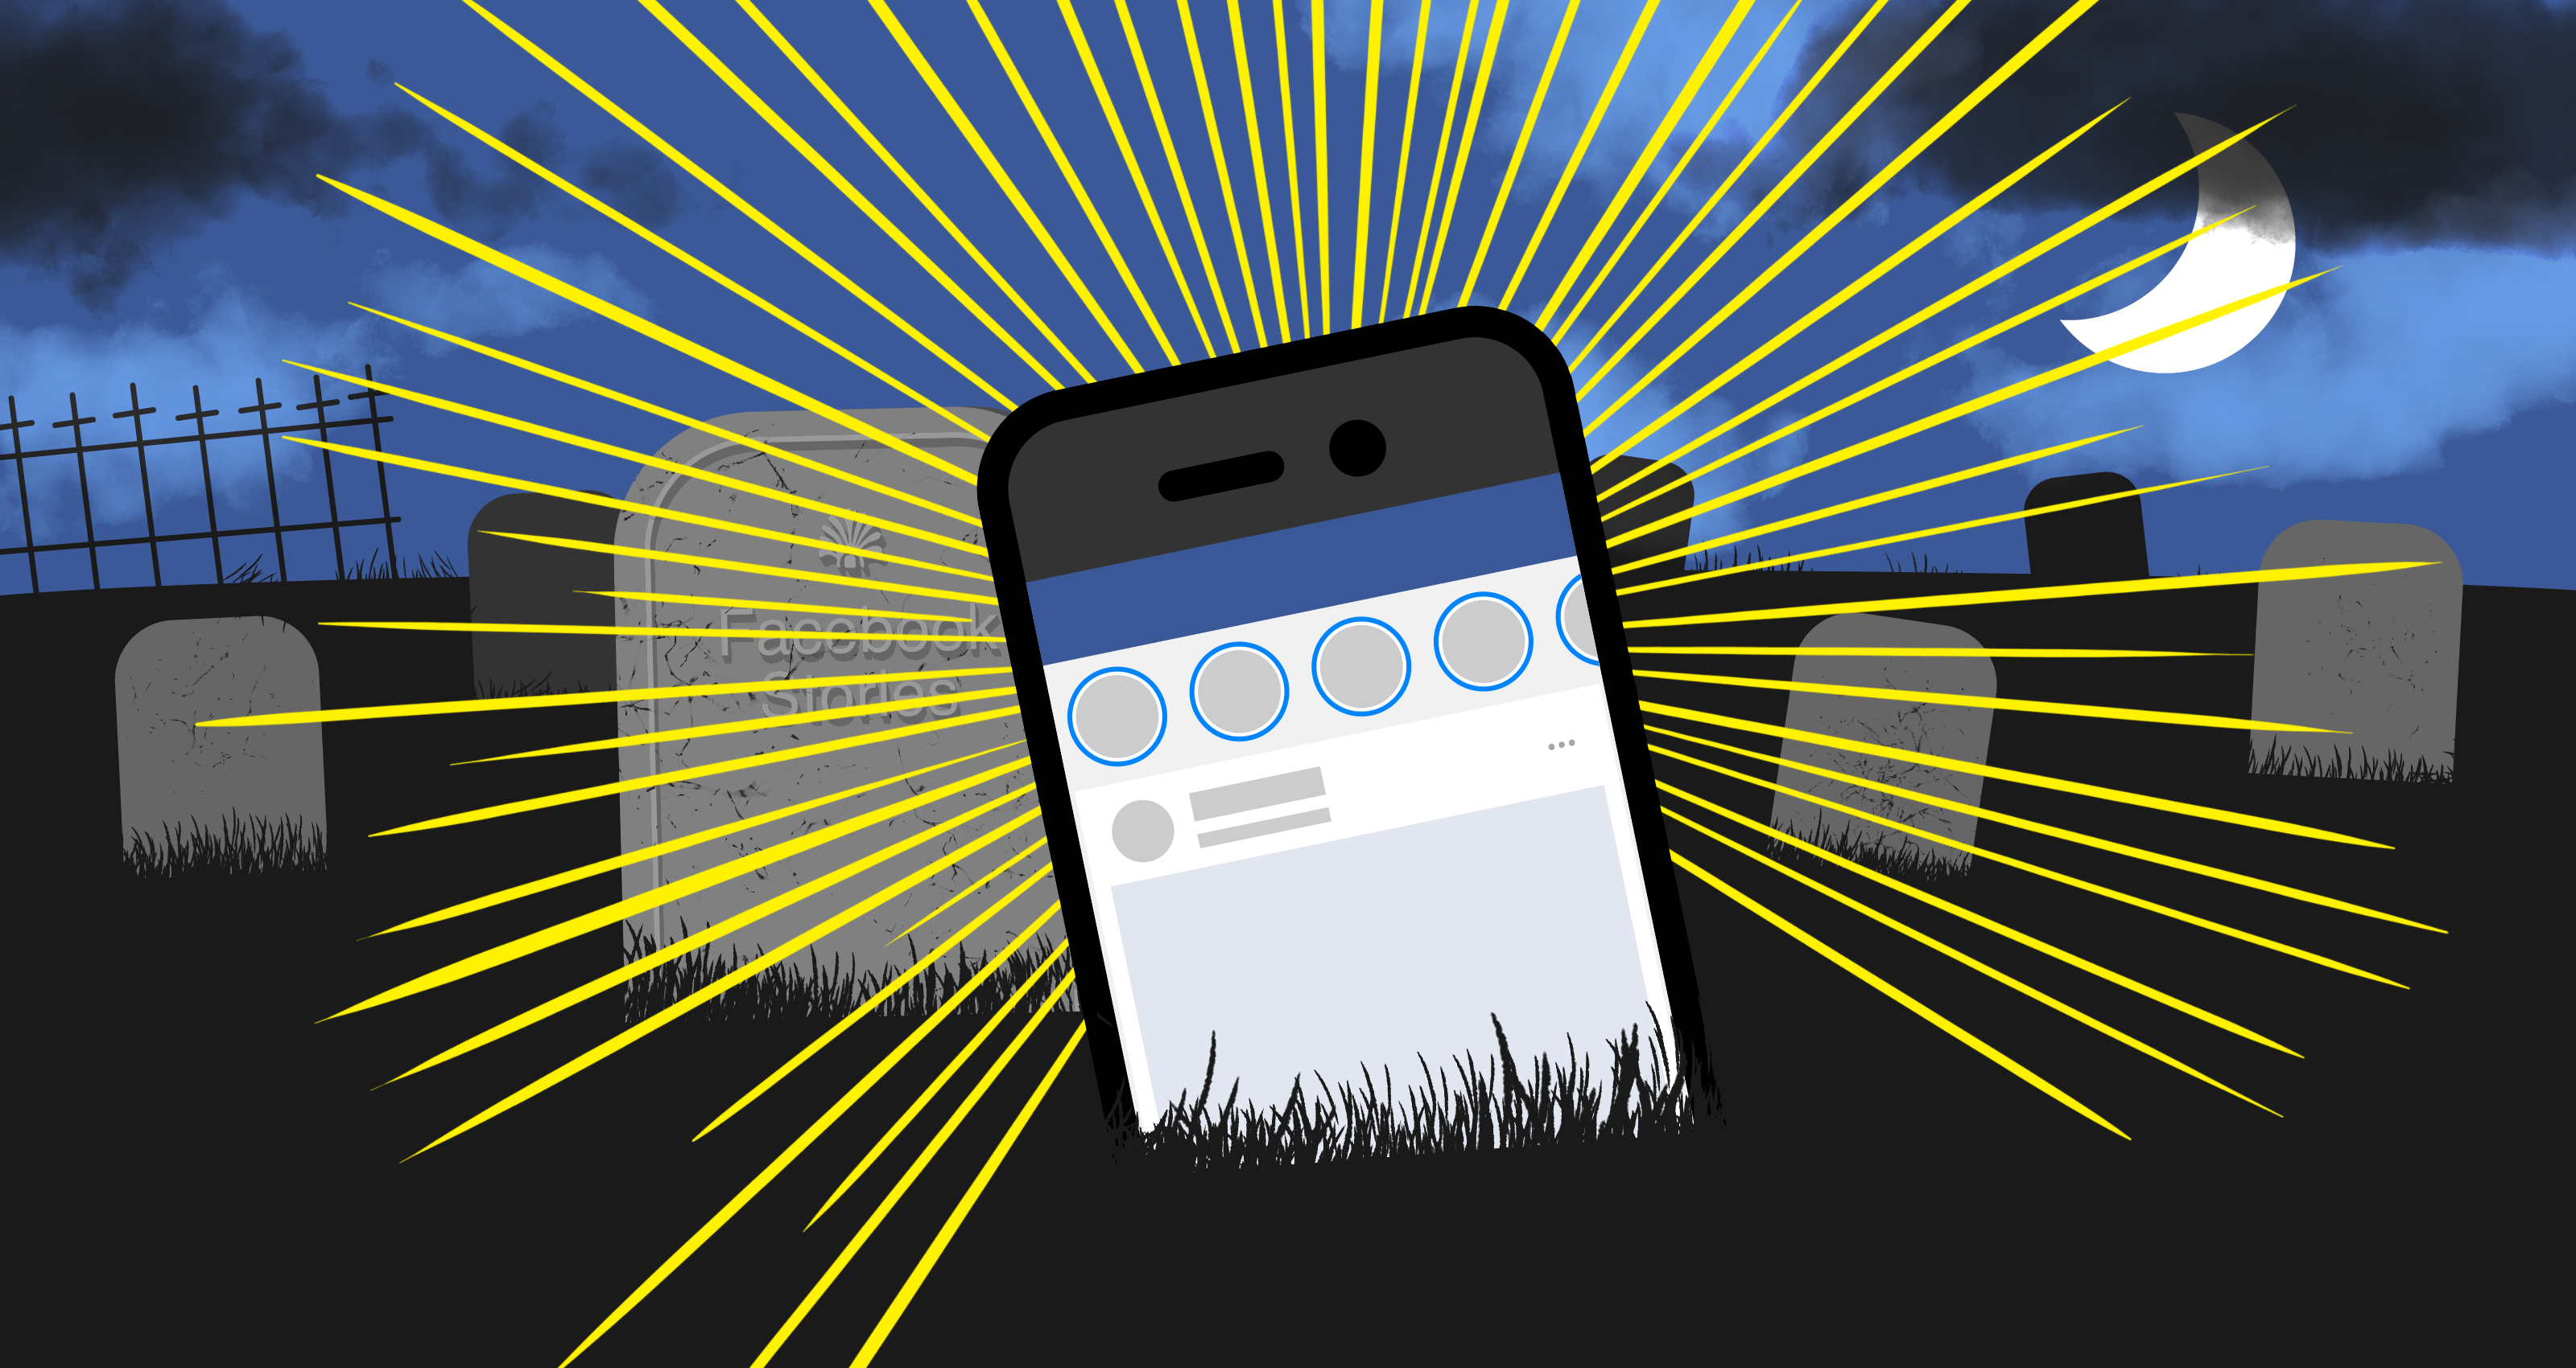 Facebook was never ephemeral, and now its Stories won't have